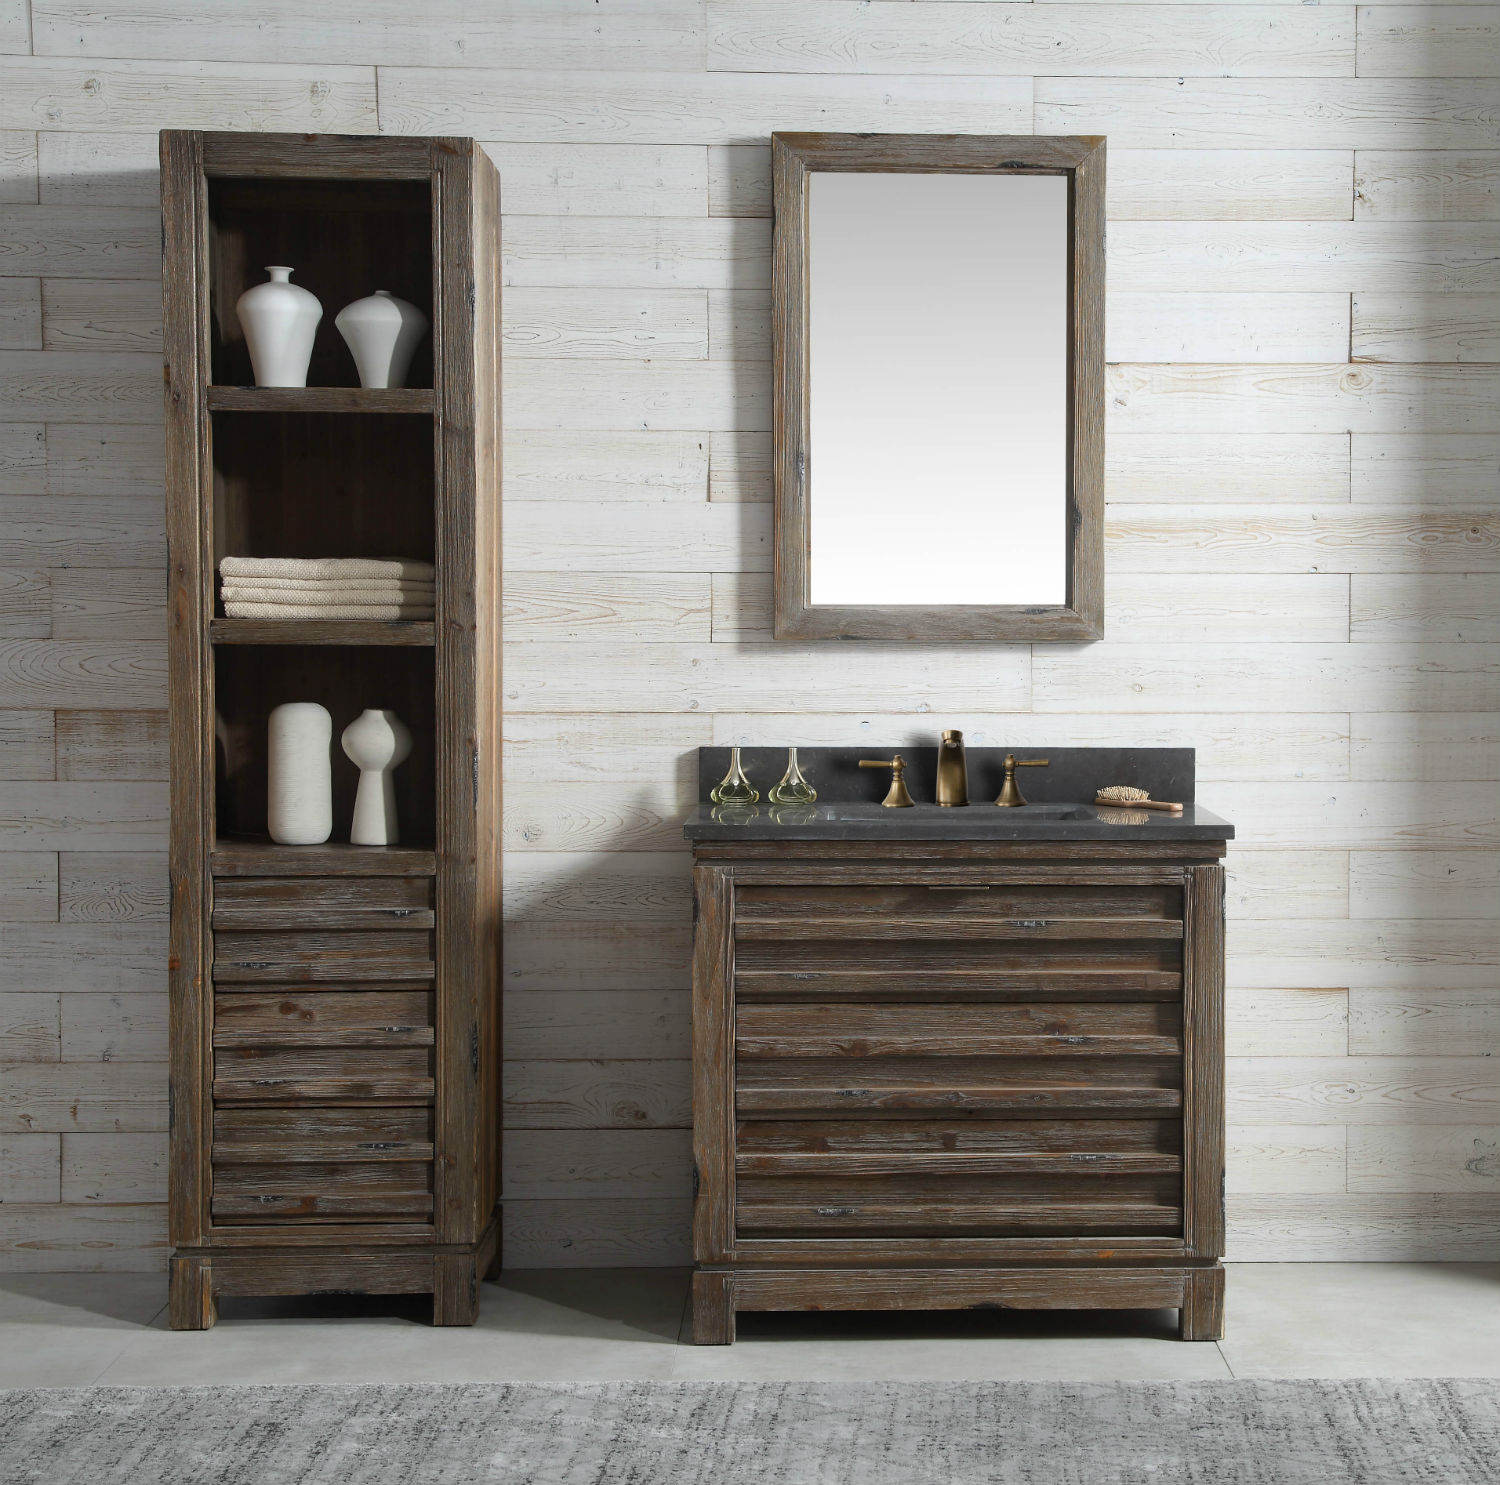 best sinks vanities bathroom black of style western distressed vanity